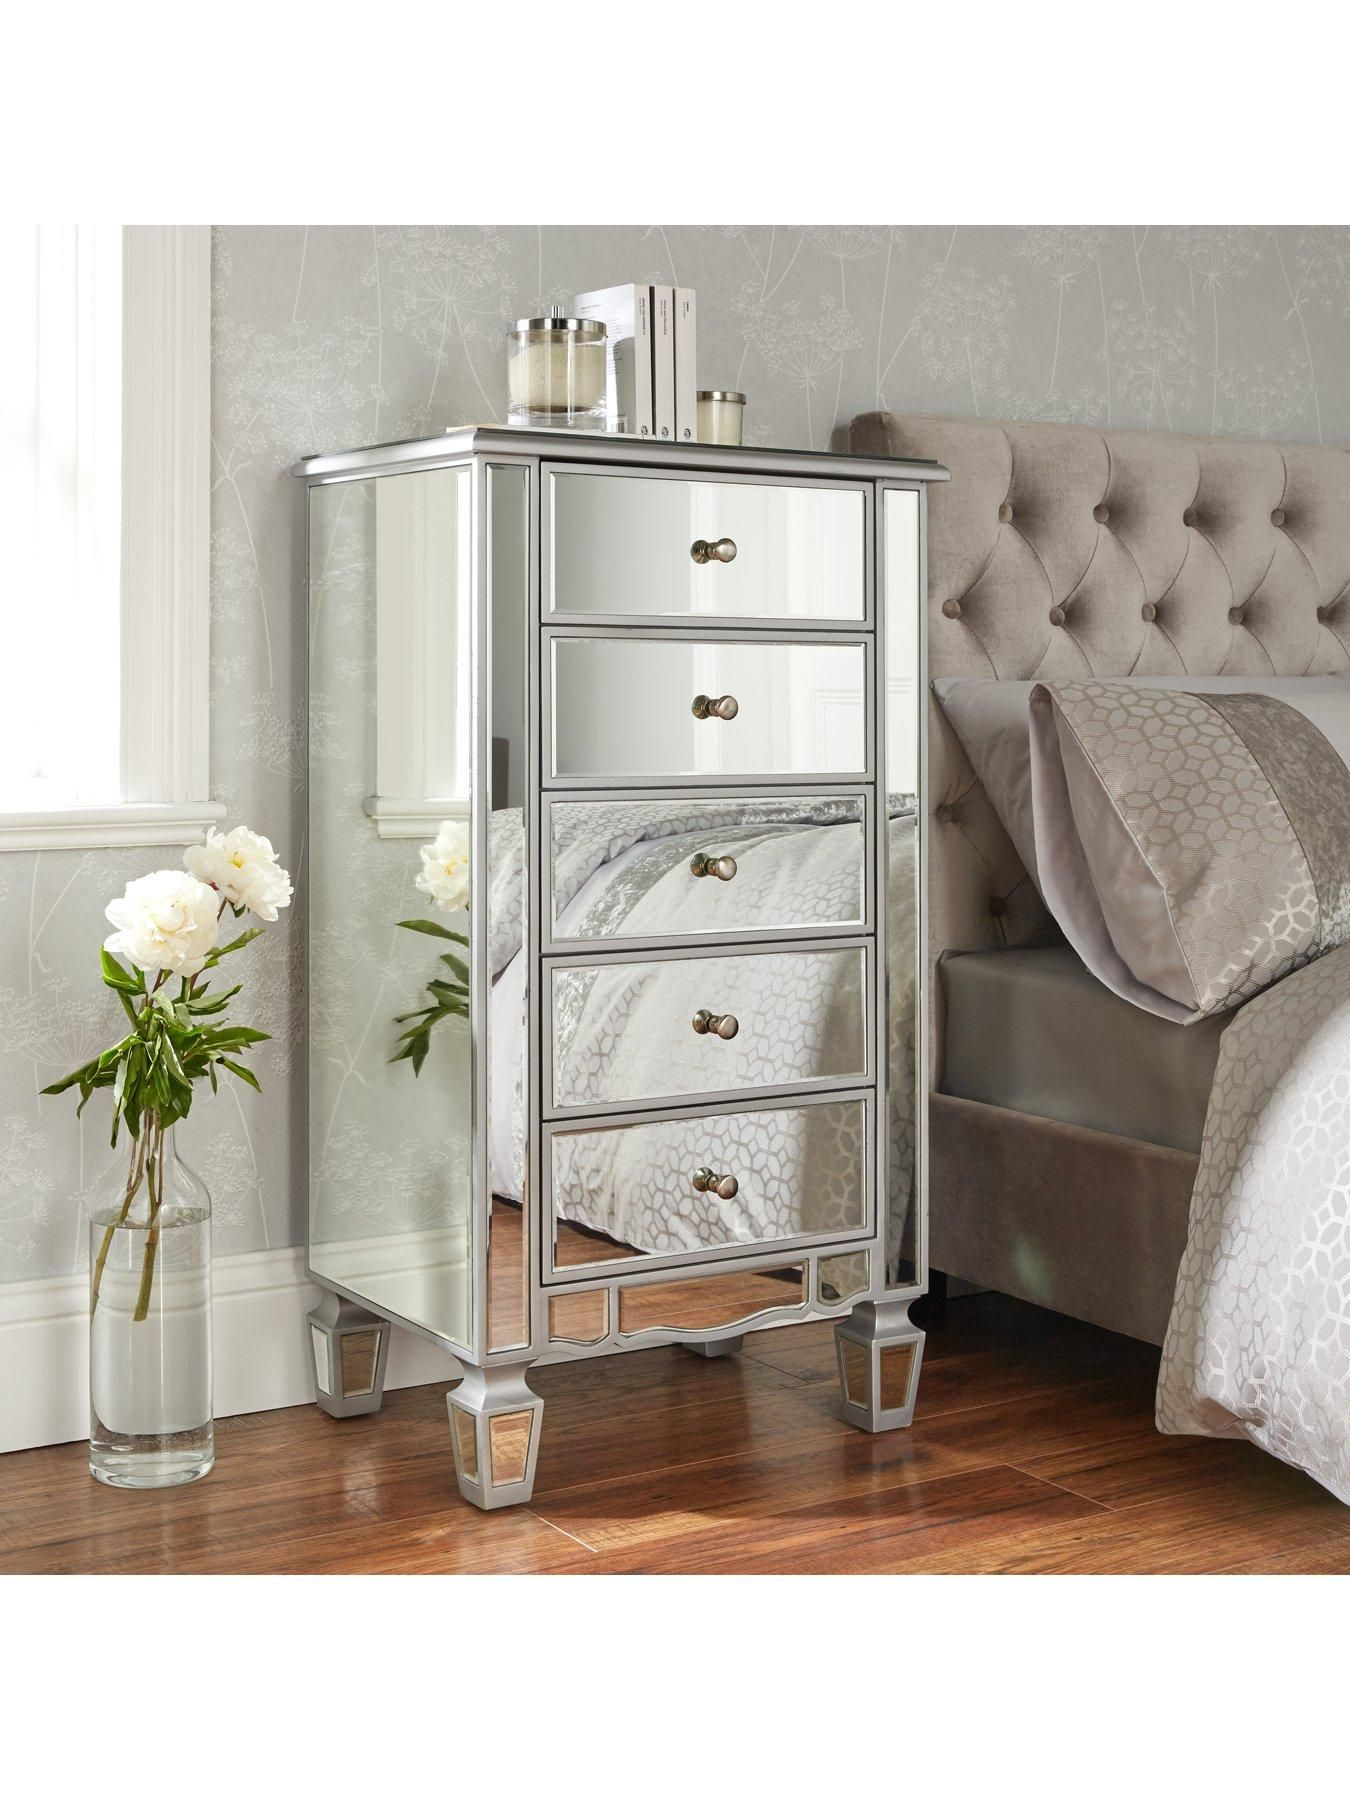 Ideal Home Mirage Mirrored Chest Of 5 Drawers In Silver Treat Your